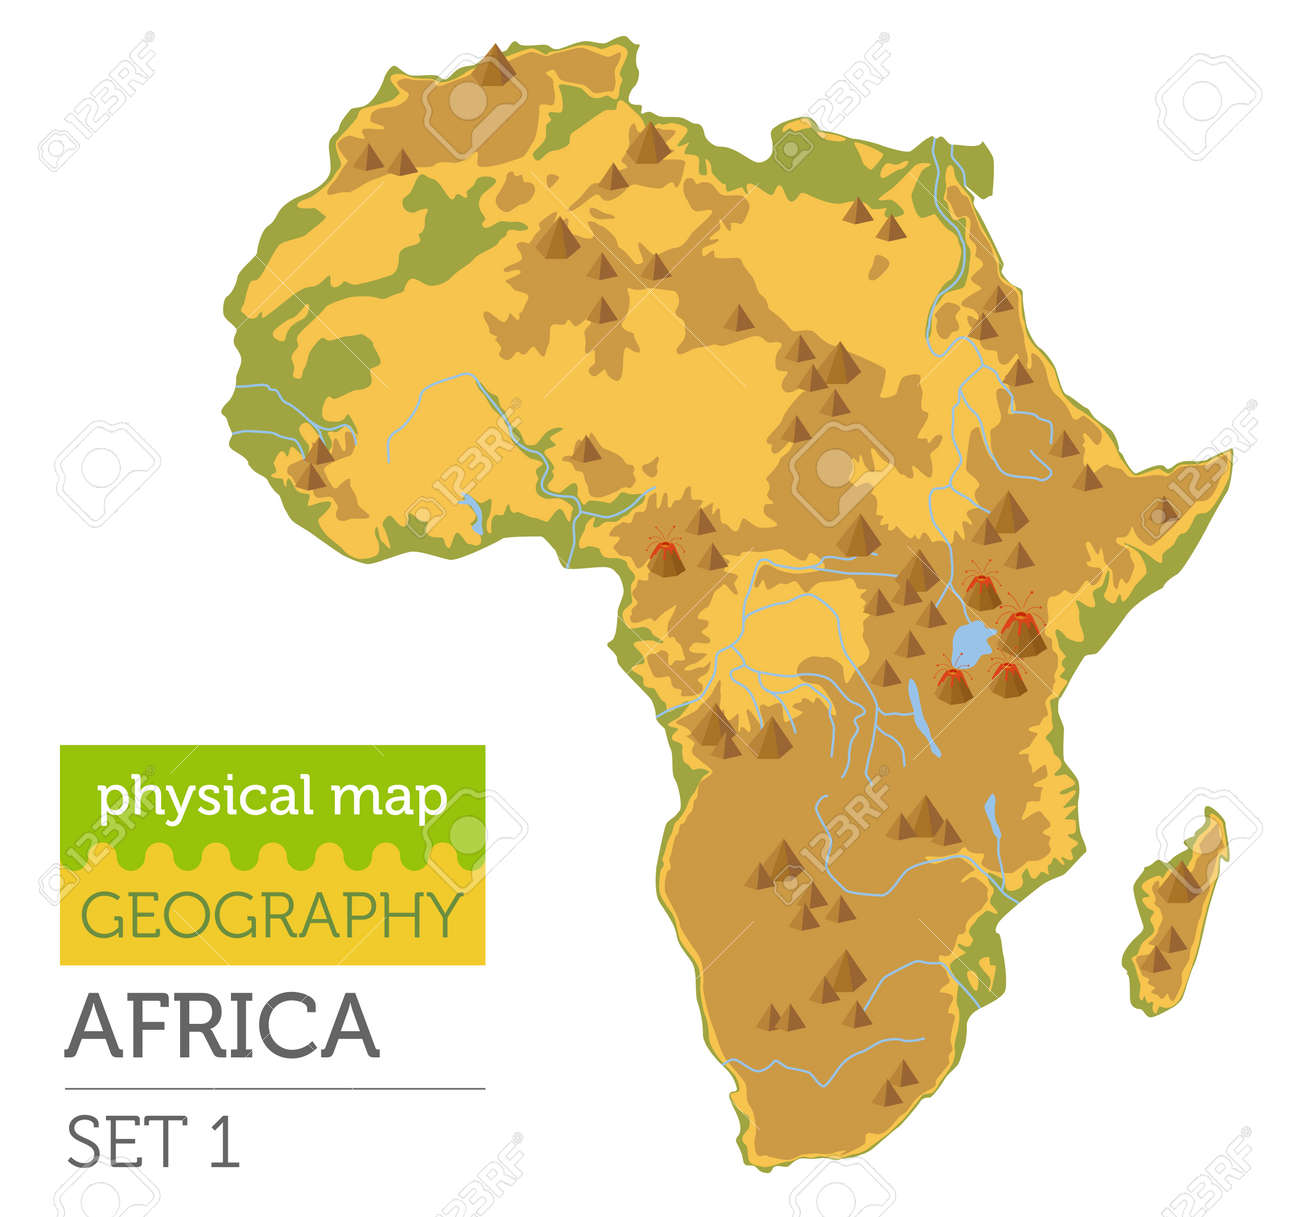 Africa Map Geography.Flat Africa Physical Map Constructor Elements Isolated On White